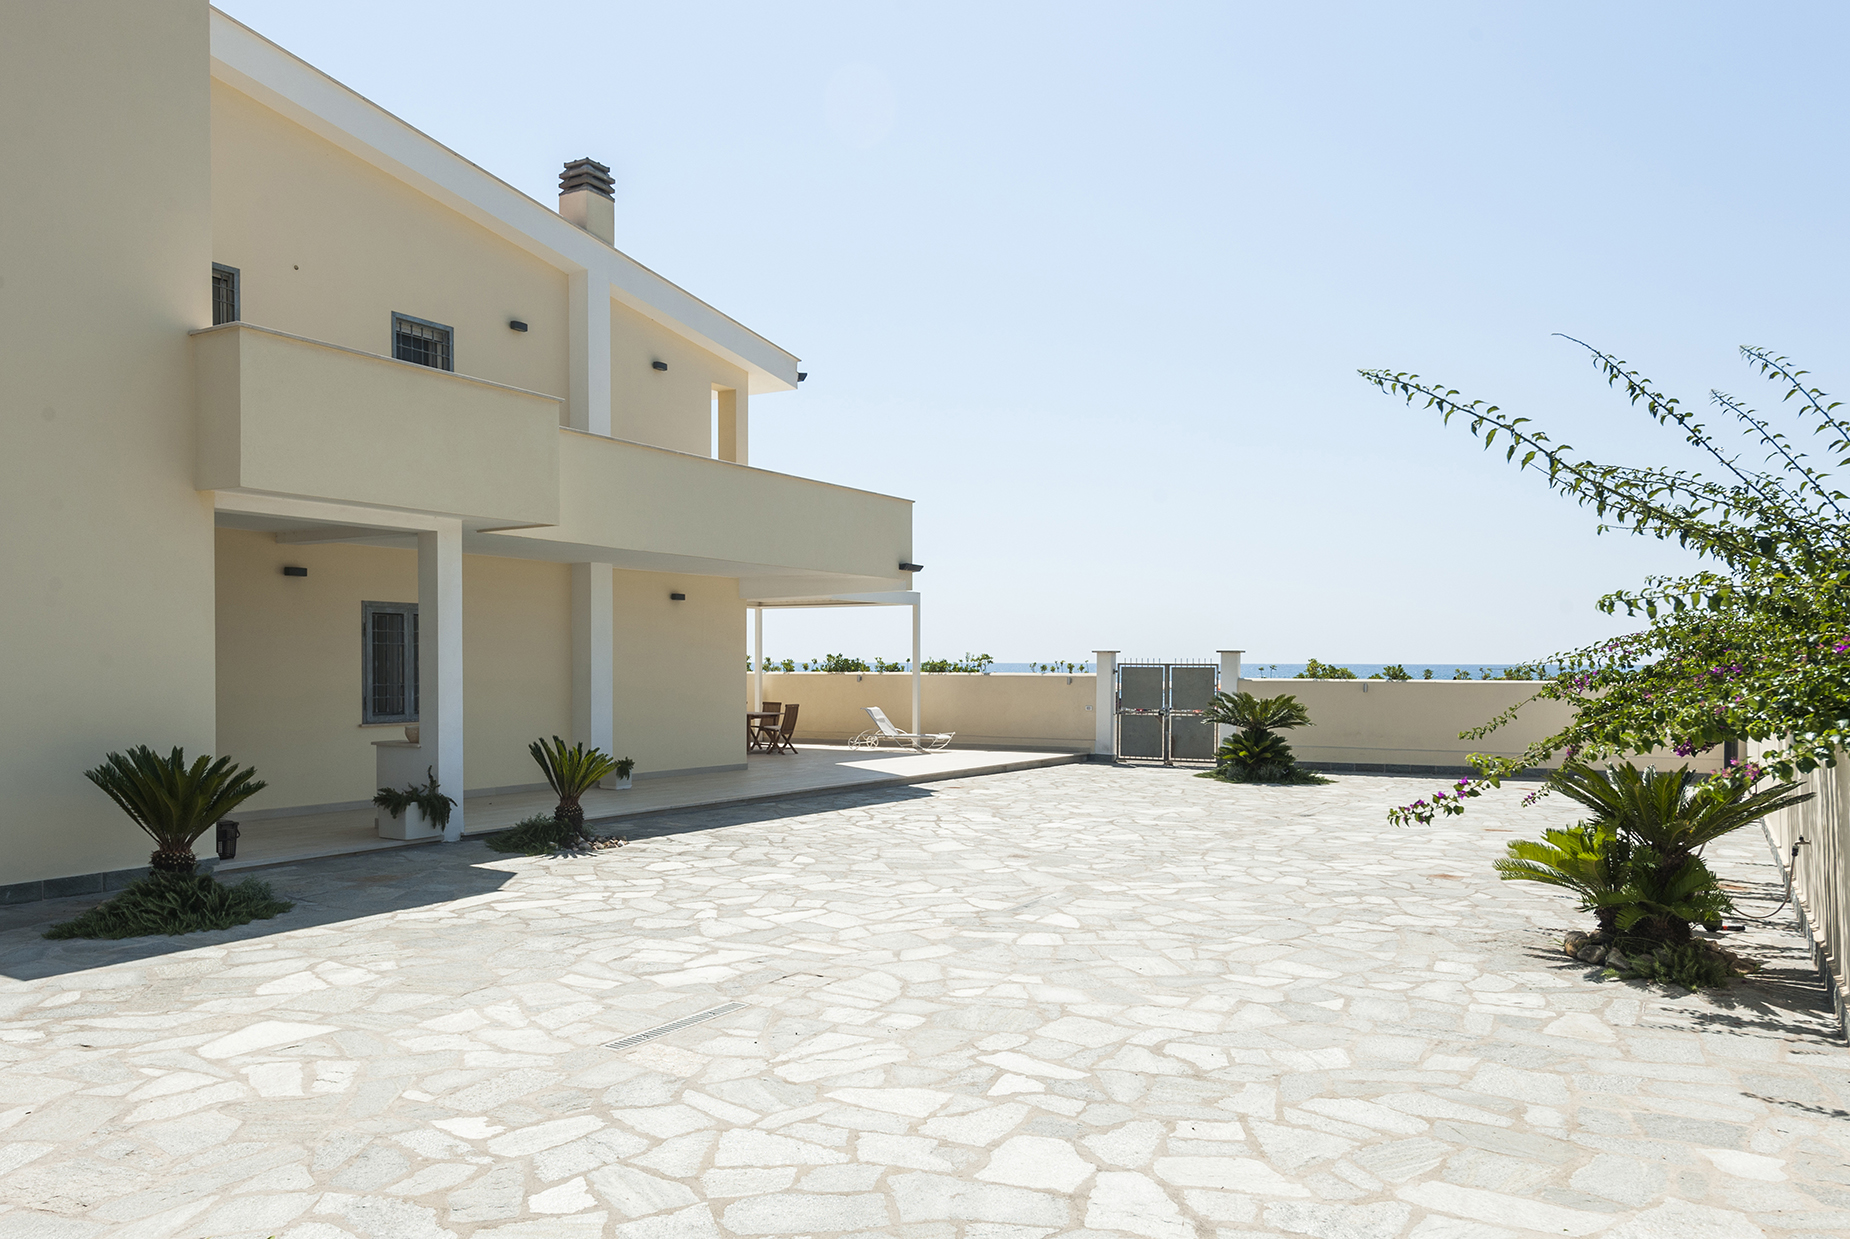 Additional photo for property listing at Brand new building with direct access to the beach San Felice Circeo, Latina Italie